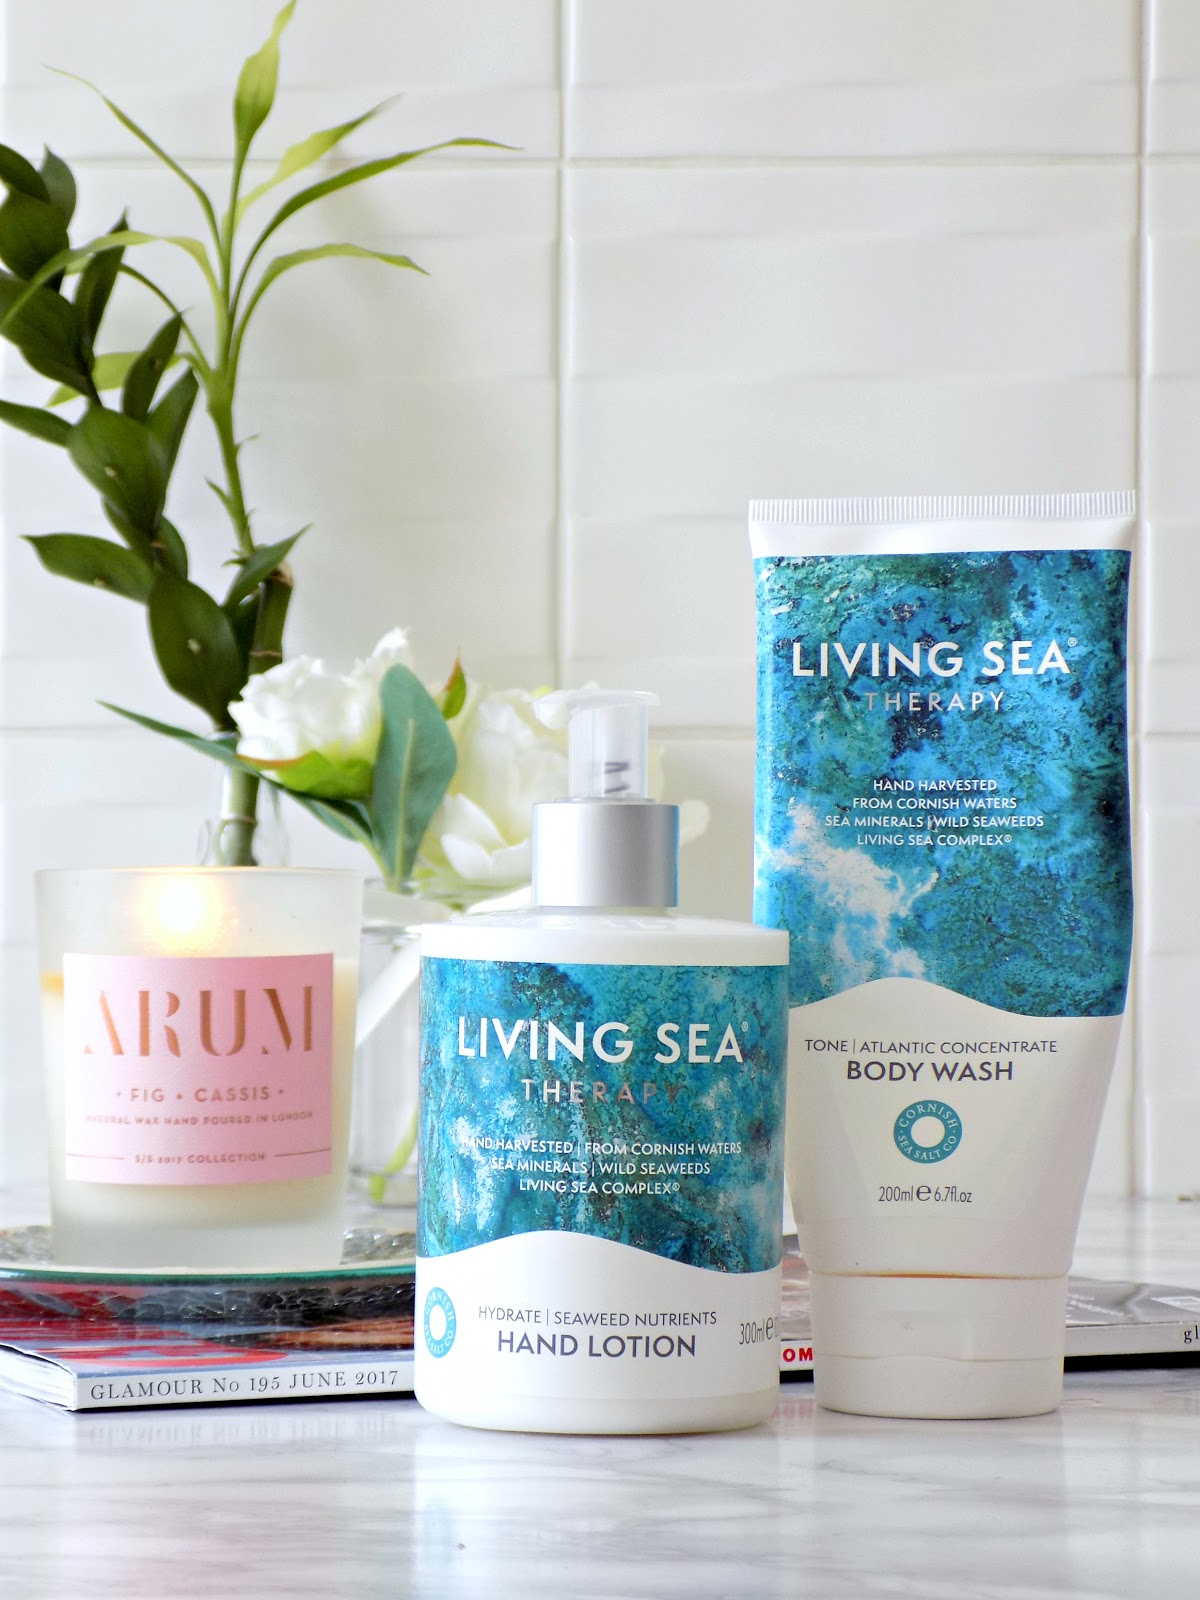 Living Sea Therapy body wash and hand lotion